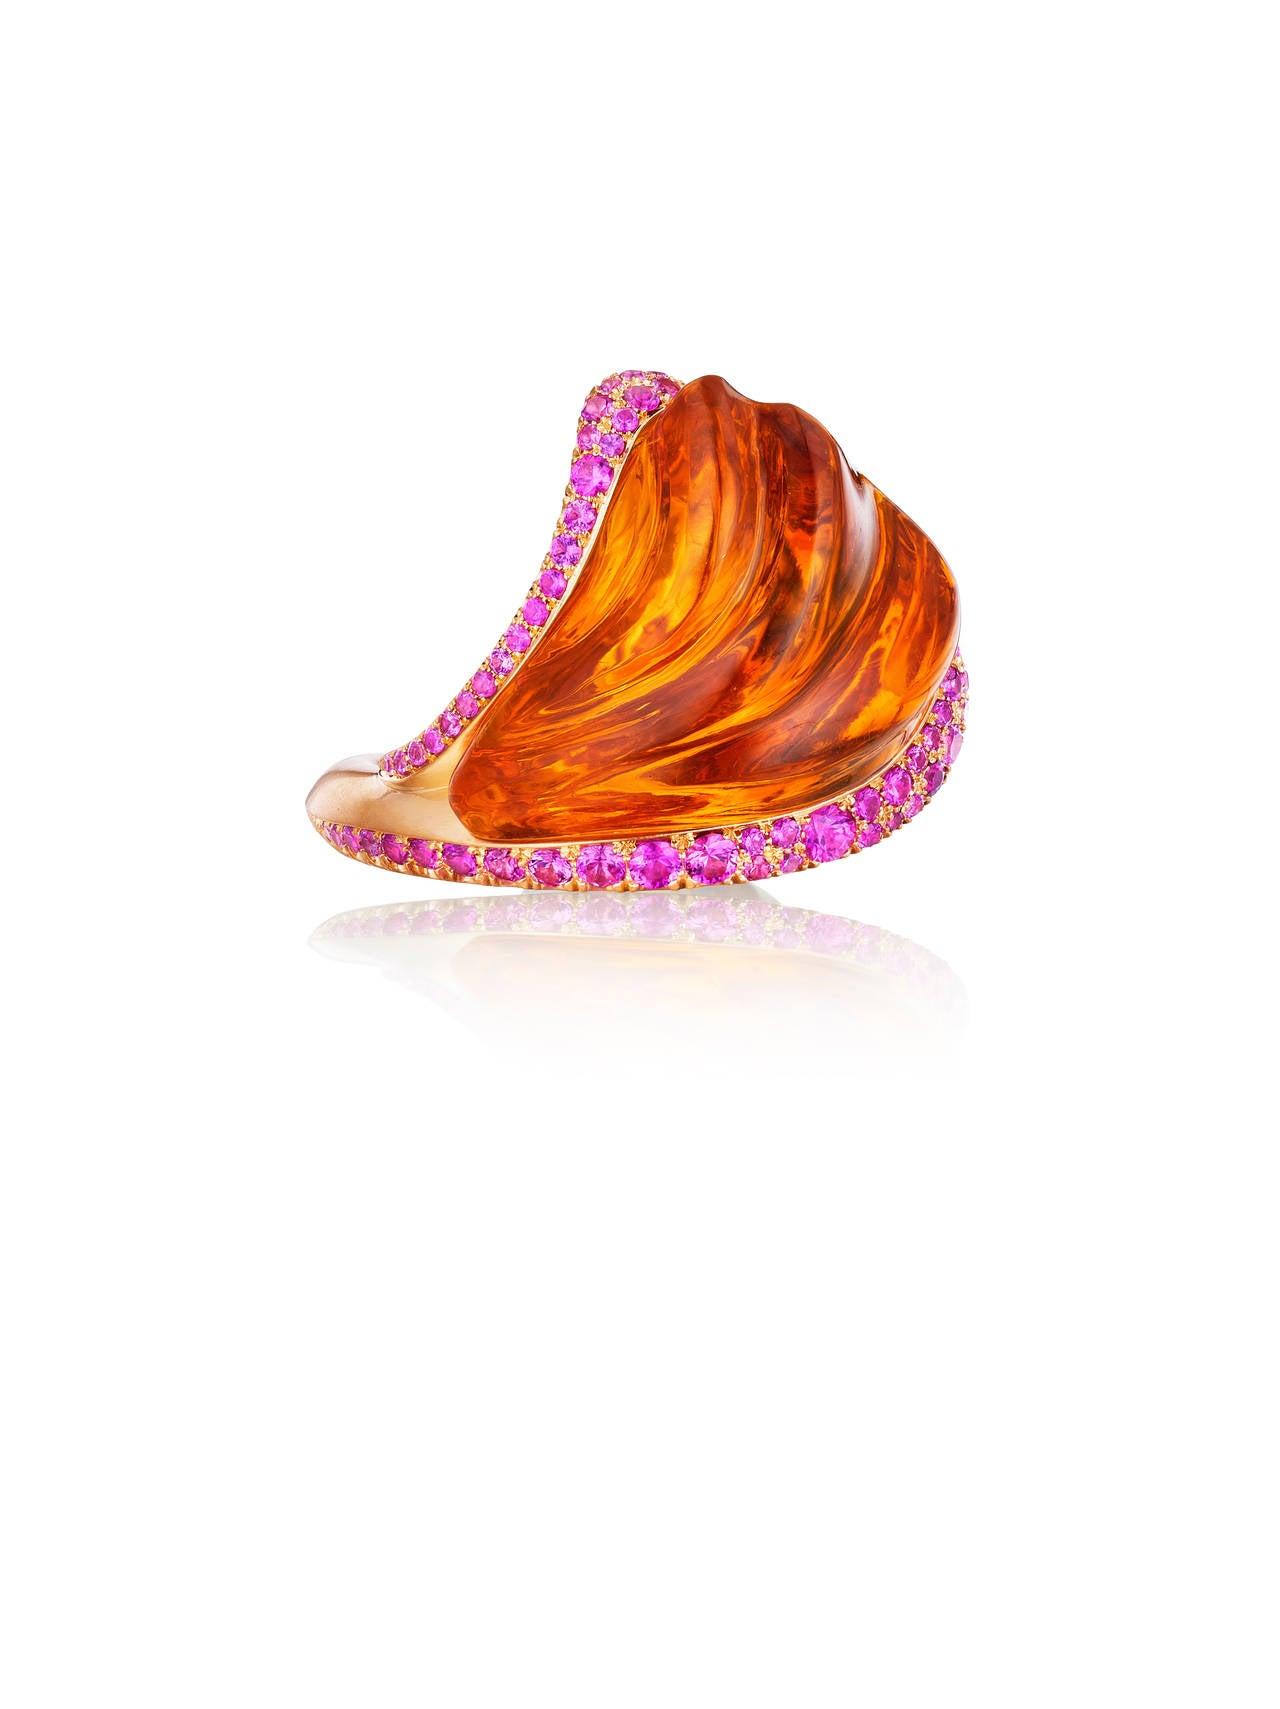 This vibrant ring features a hand-carved 58 ct citrine complimented by hot pink sapphires set in 18K yellow gold.